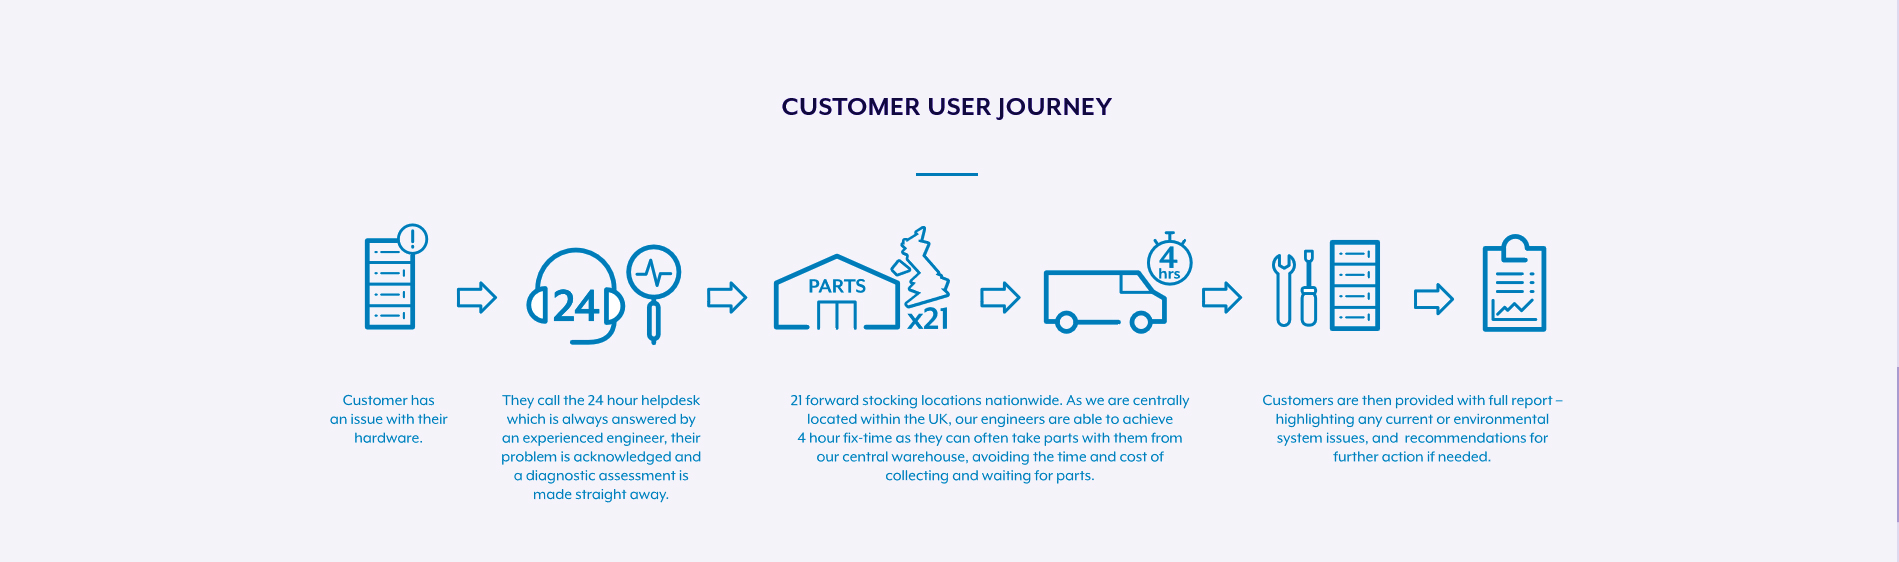 Finite IT Customer Journey